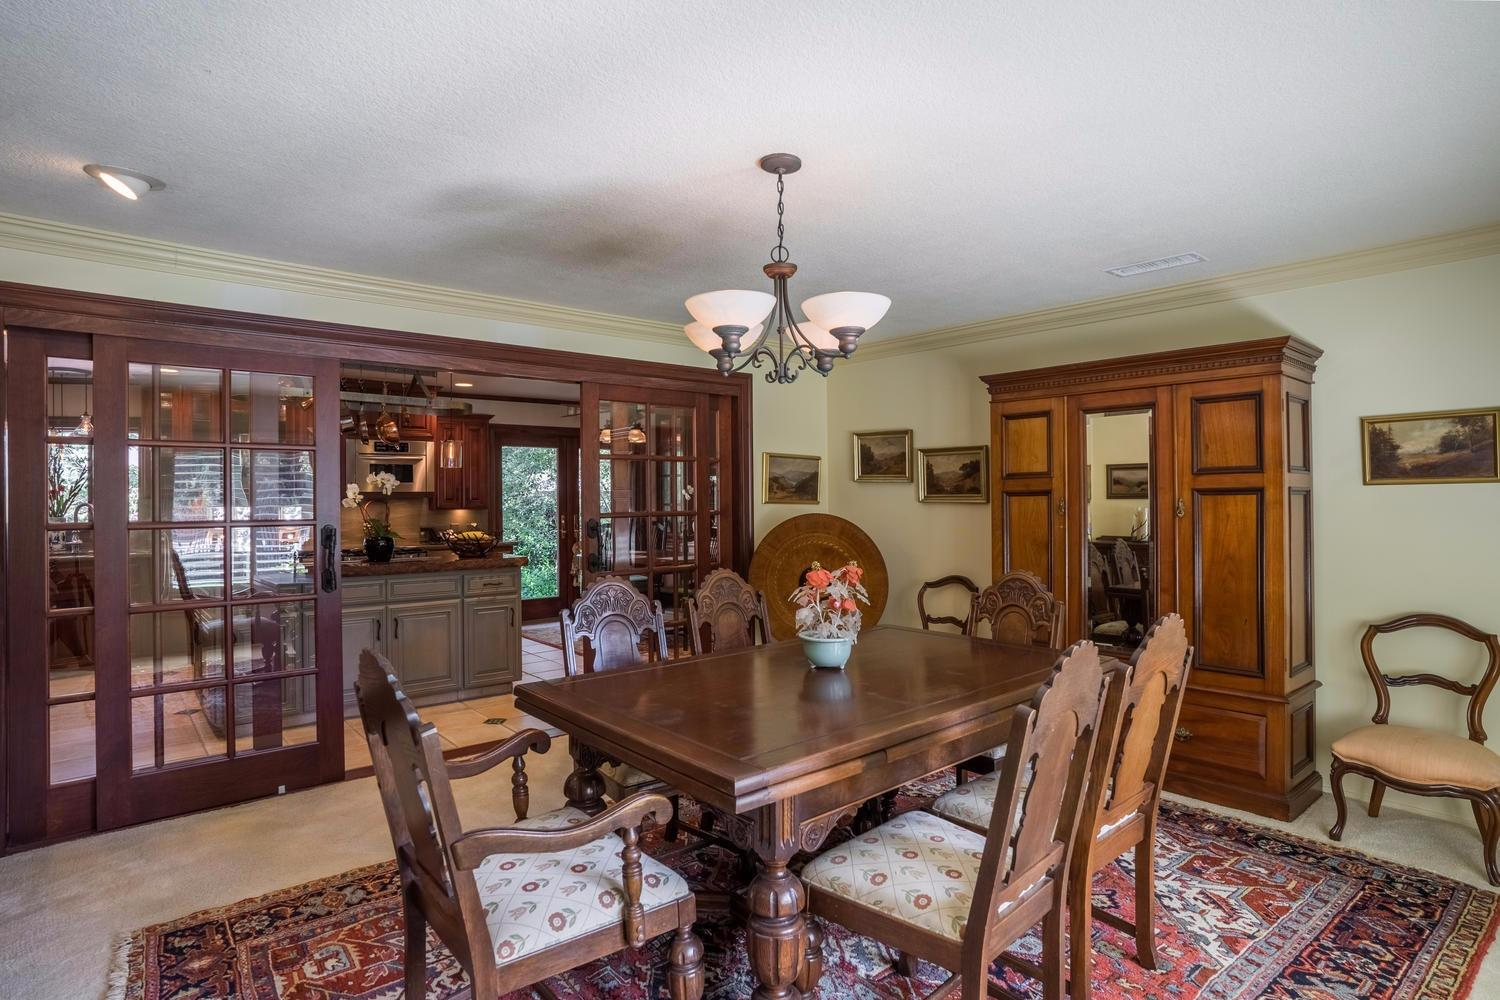 509 E Griffith Way Presented by Angie Hyatt - Property Details